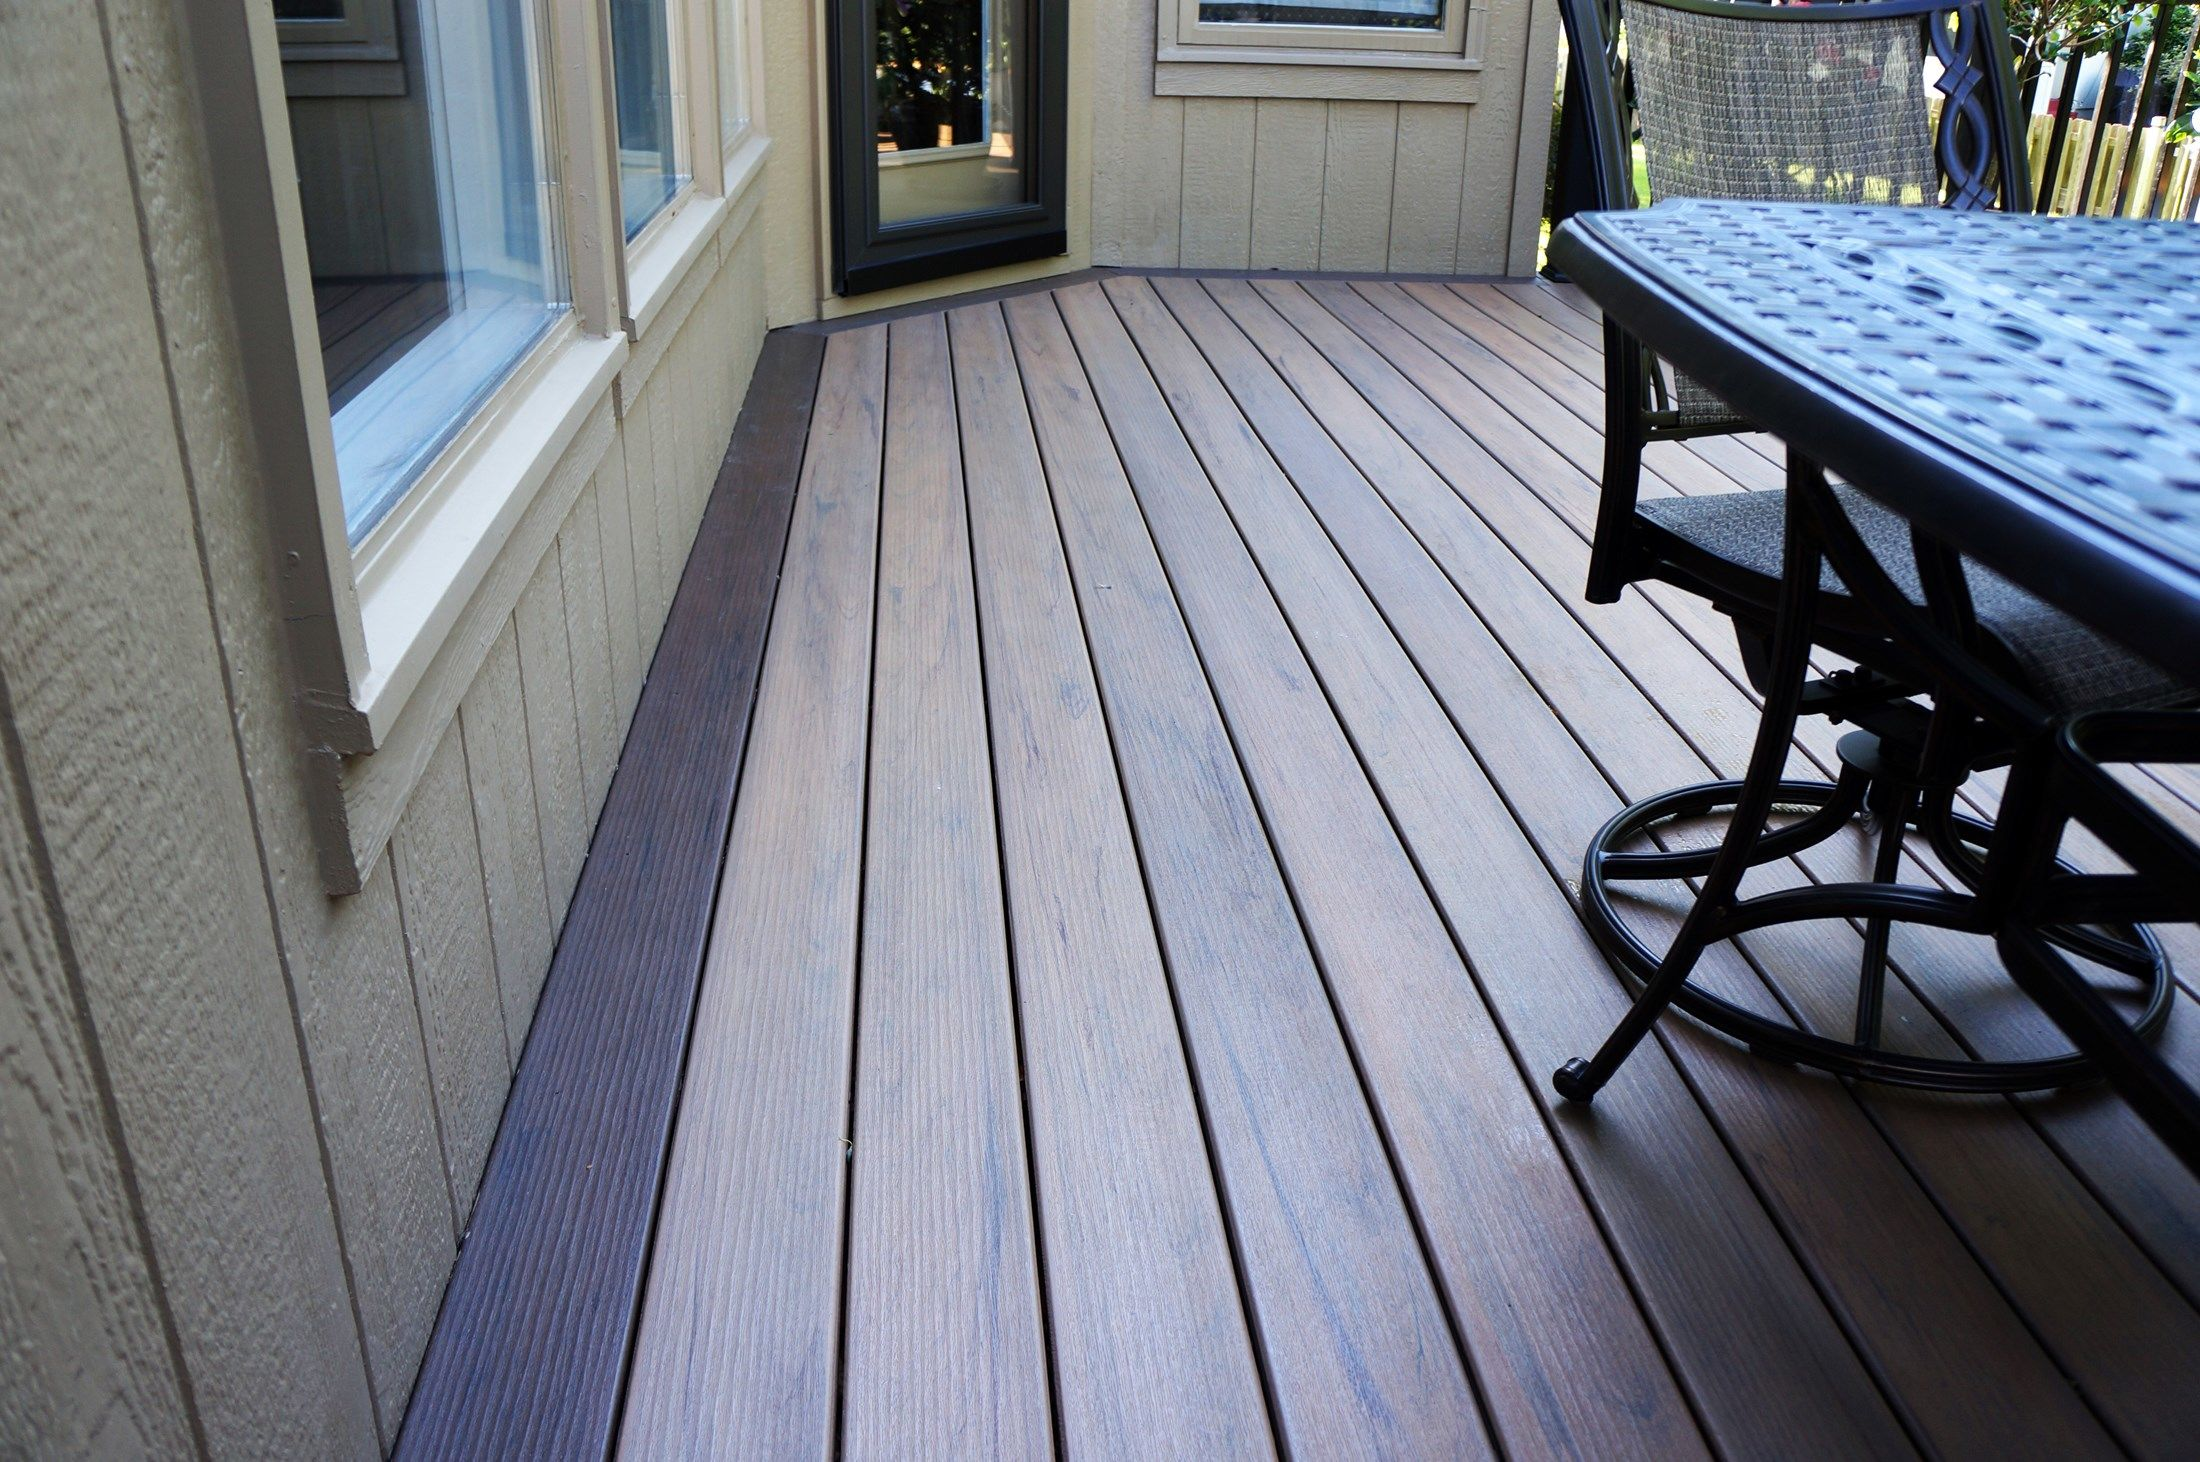 Timbertech deck 4 picture 5137 for Composite deck material reviews